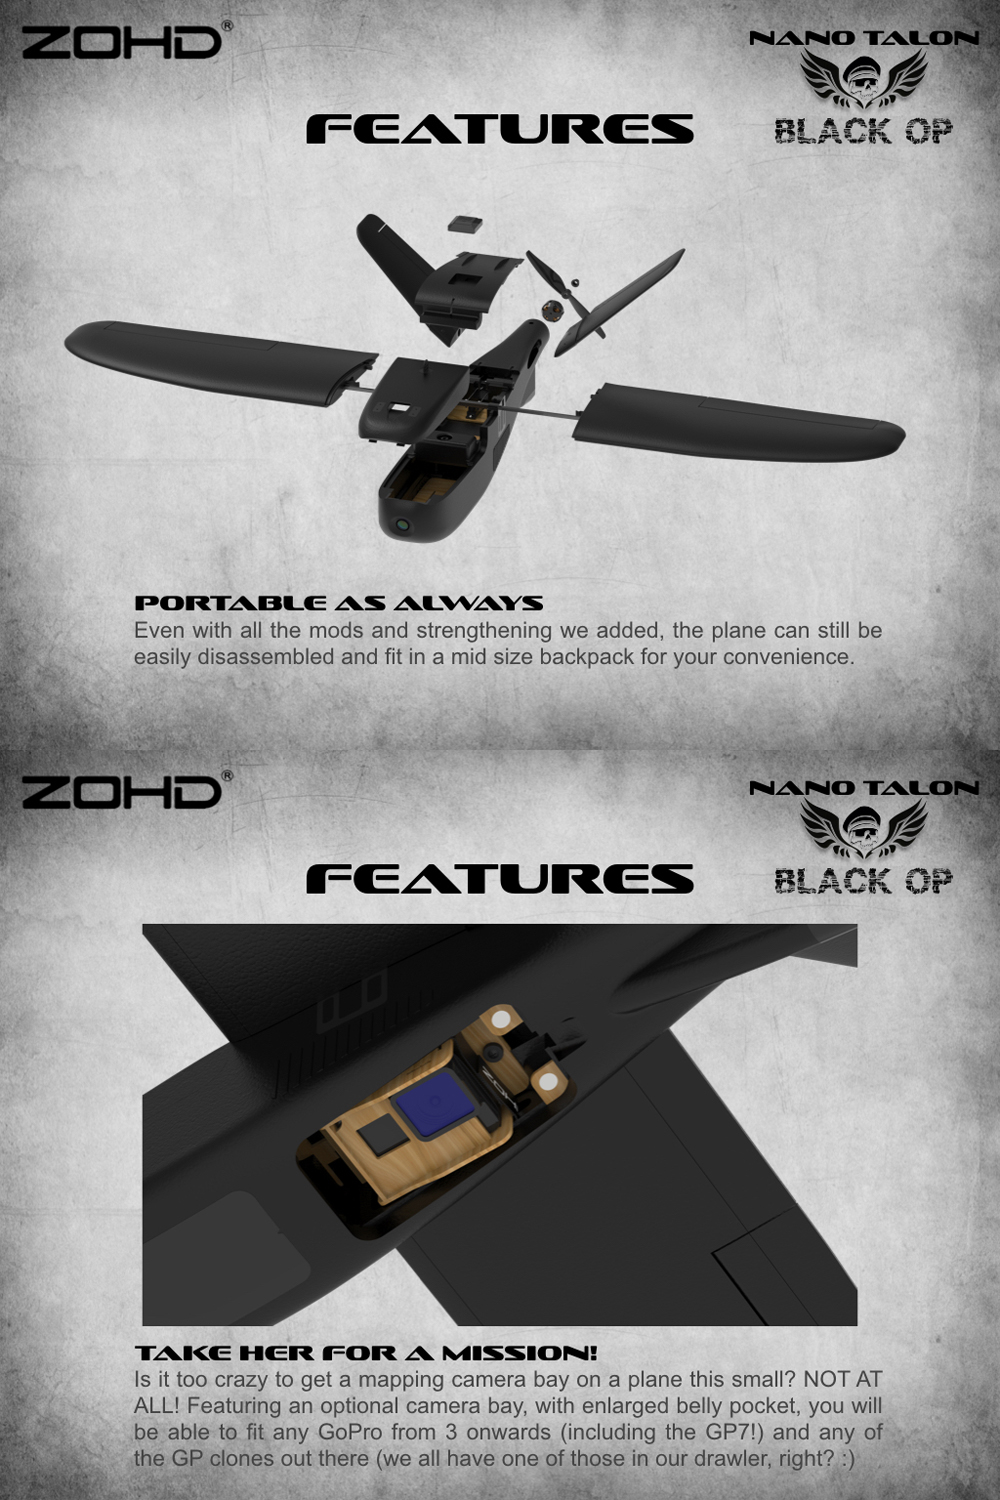 ZOHD Nano Talon Black OP 860mm Wingspan AIO V-Tail EPP FPV Wing RC Airplane PNP/With FPV Ready Limited Edition